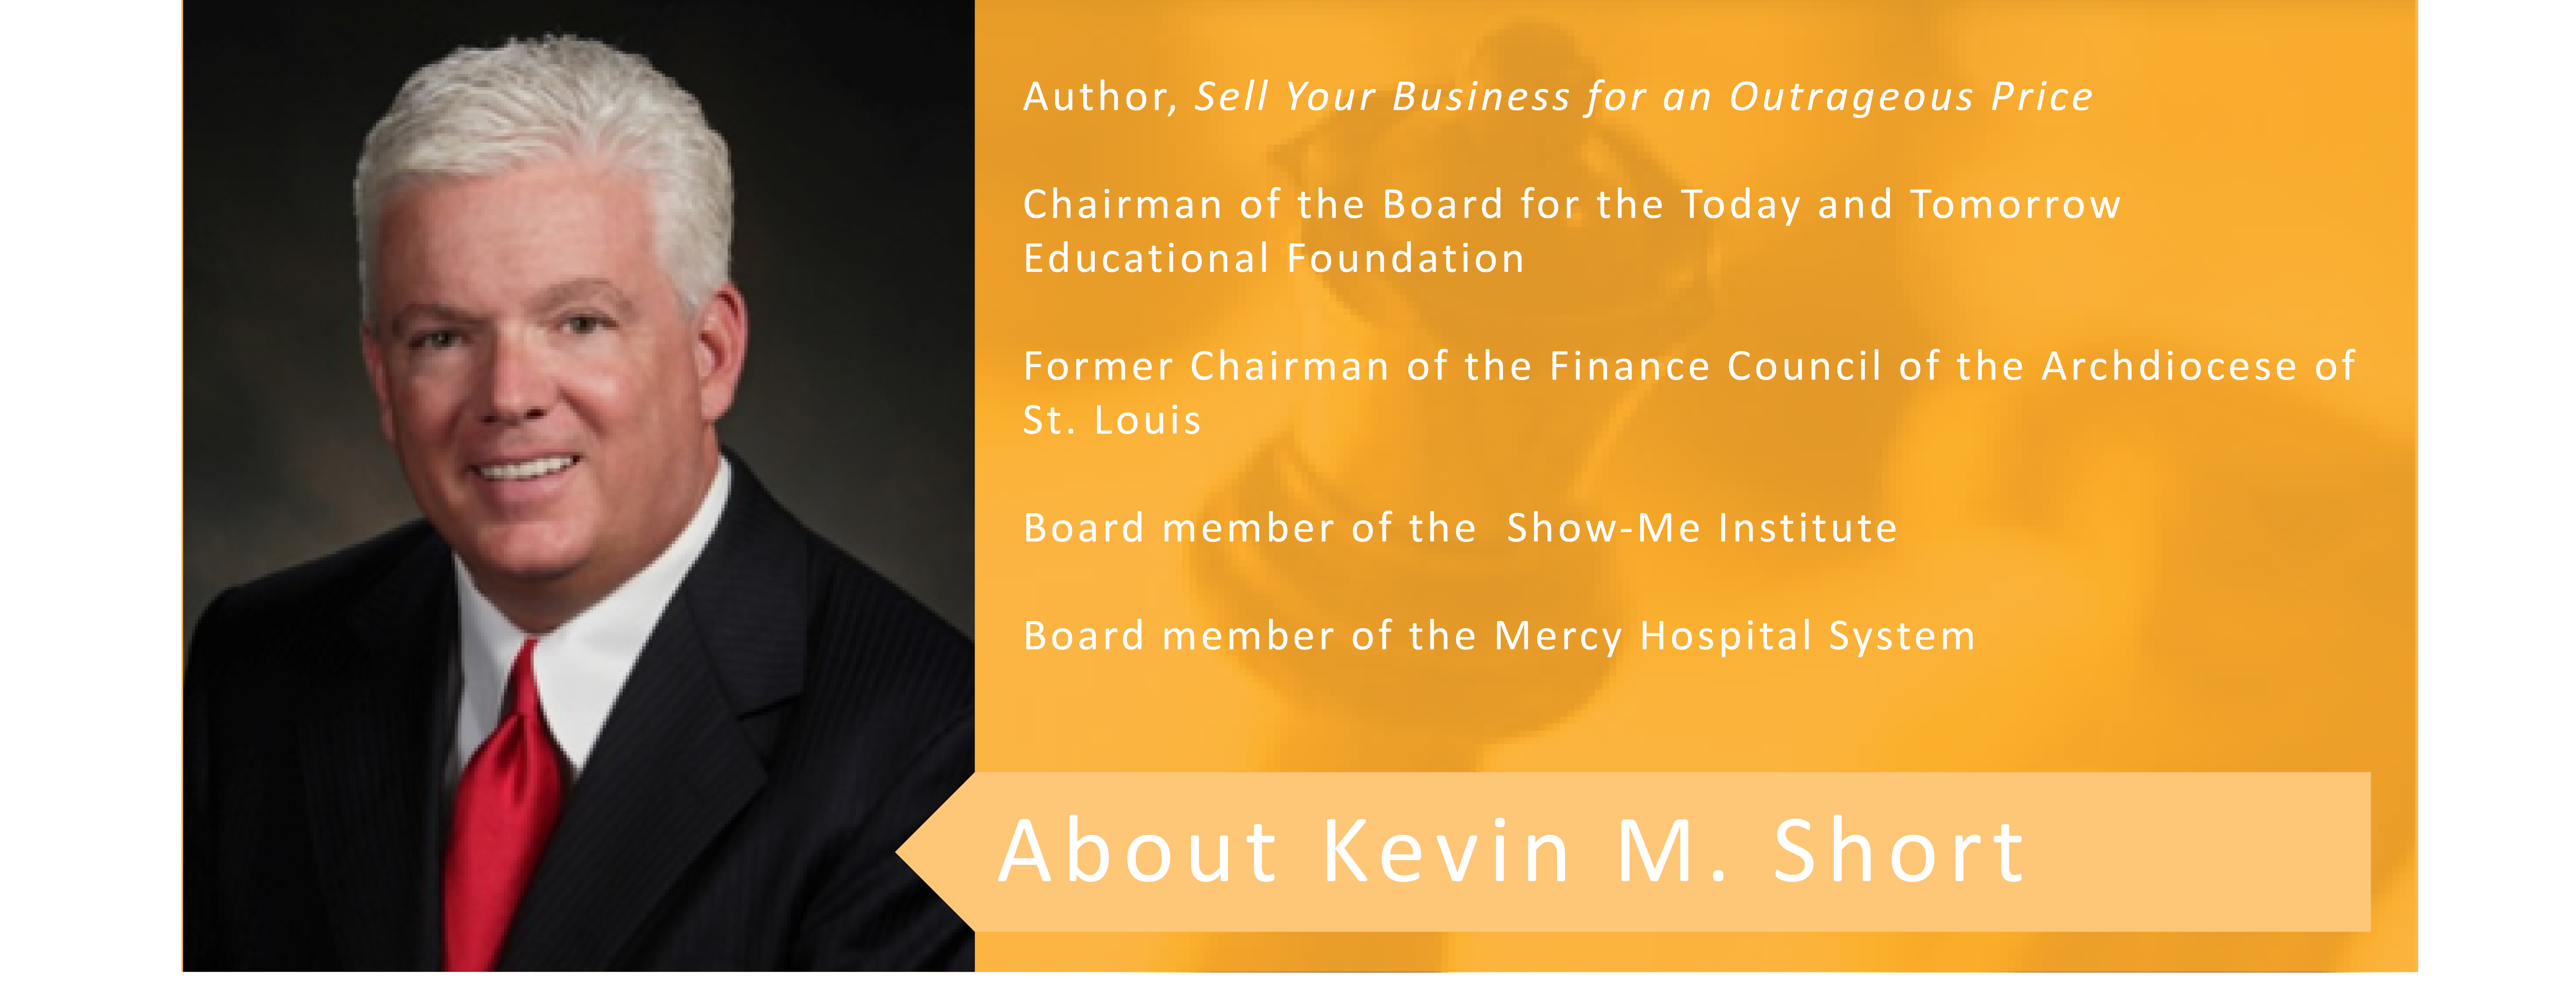 about Kevin M Short